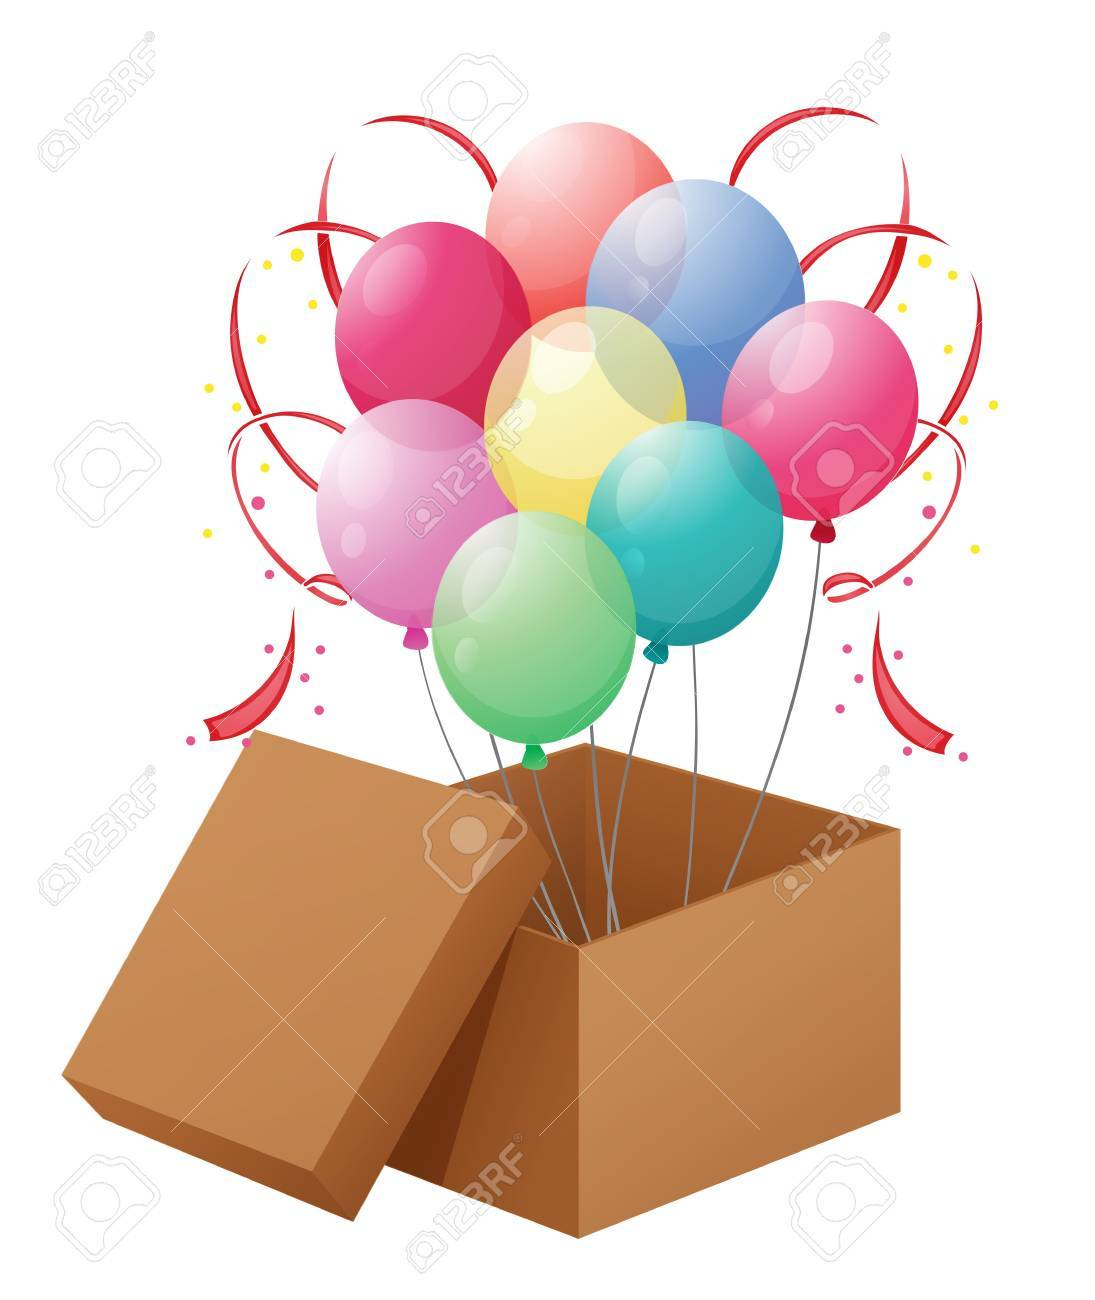 Illustration of the balloons in the box on a white background Stock Vector - 18981070